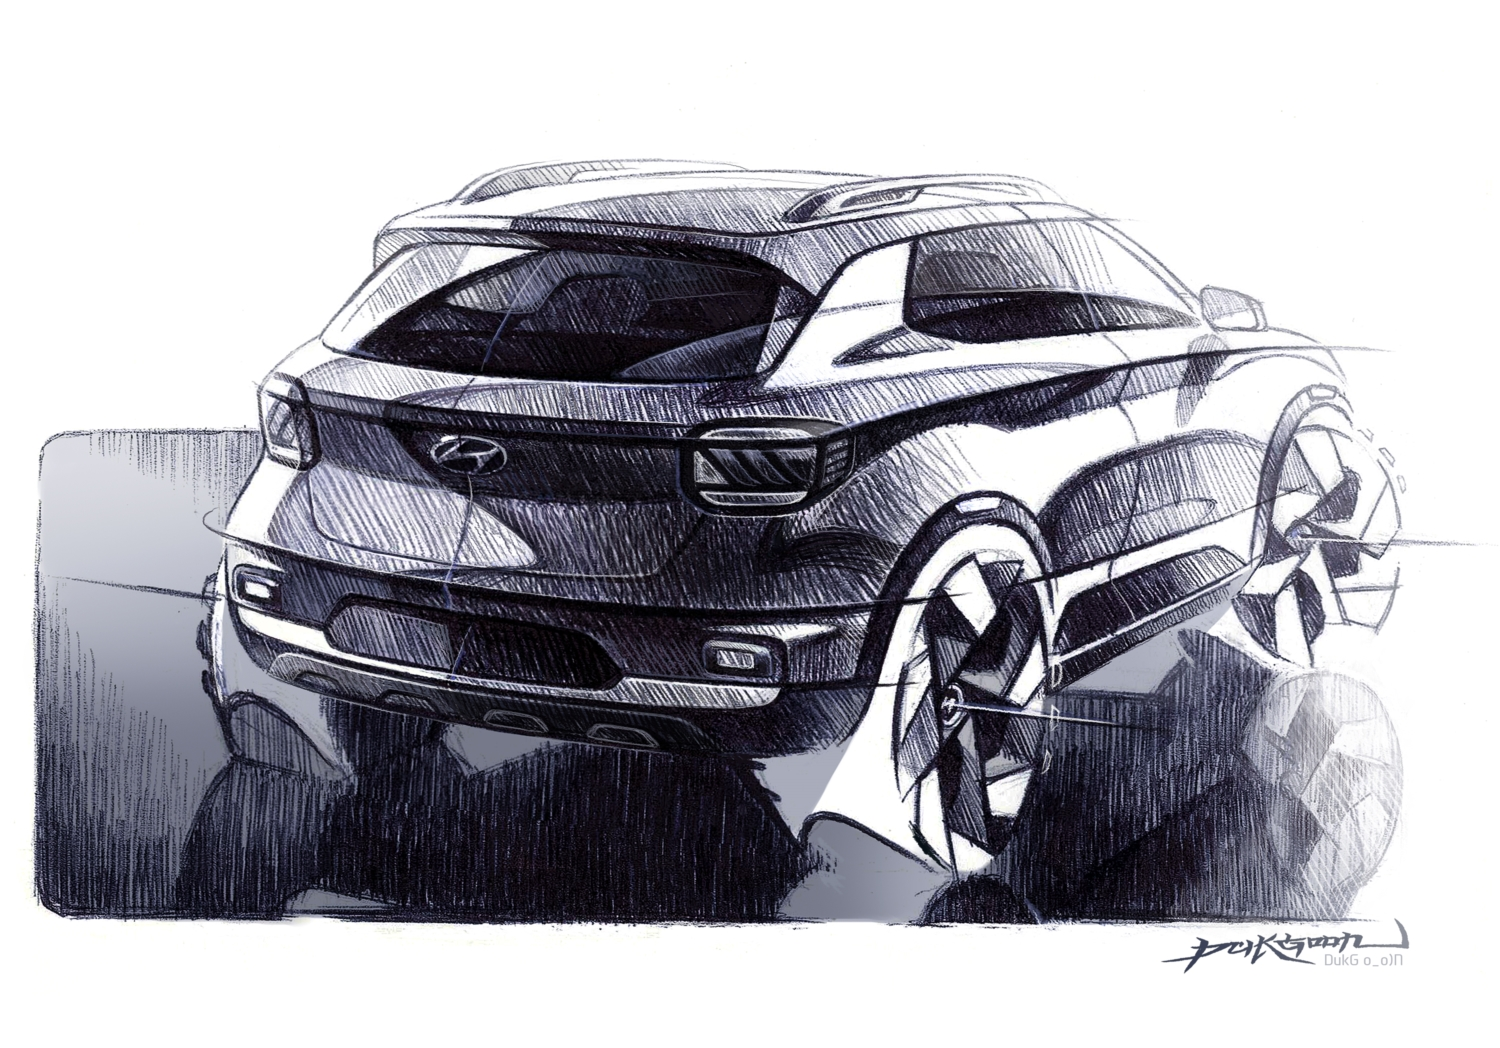 Hyundai Venue Rear View Sketch